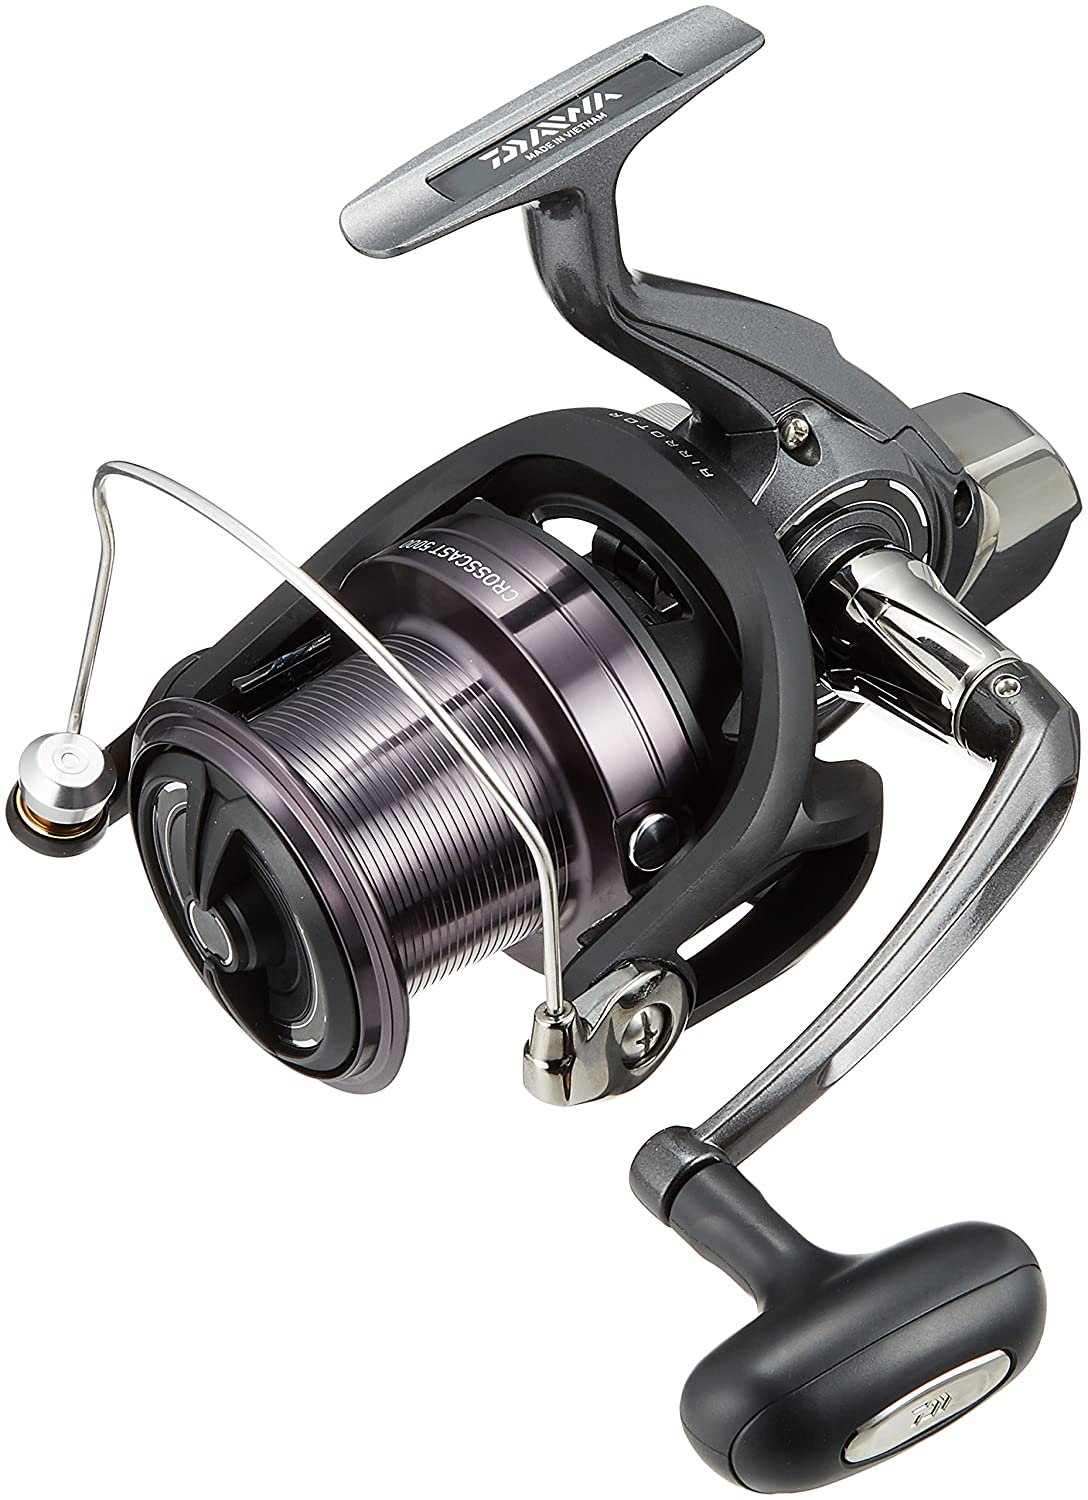 Daiwa (Daiwa) Spinning Reel 17 Cross-Cast 5000 Jp F/S: Amazon.es ...